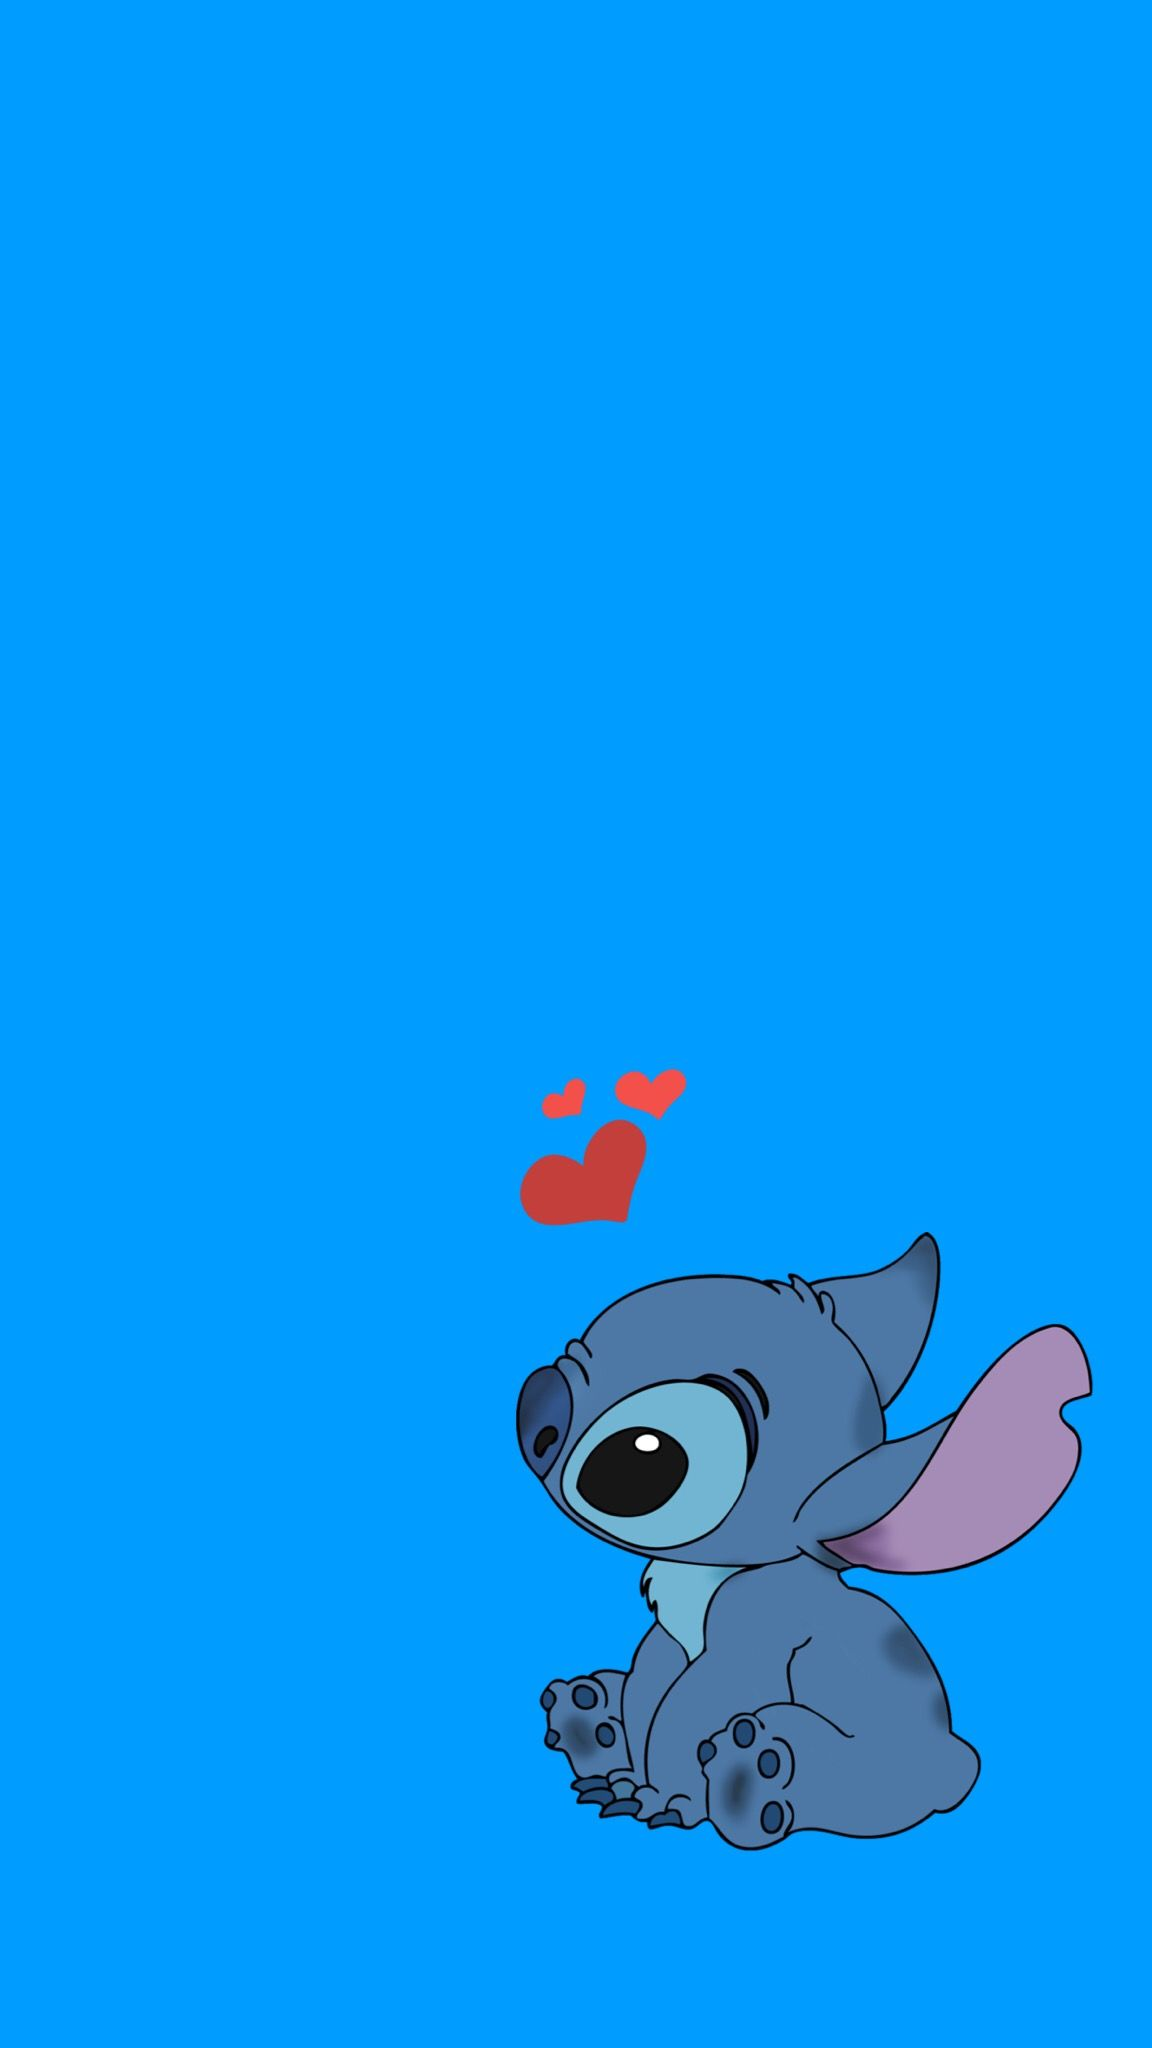 This Wallpaper Is Perfect For Who Loves Stitch Stitch Love Blue Cute Disney Characters Wallpaper Character Wallpaper Funny Iphone Wallpaper